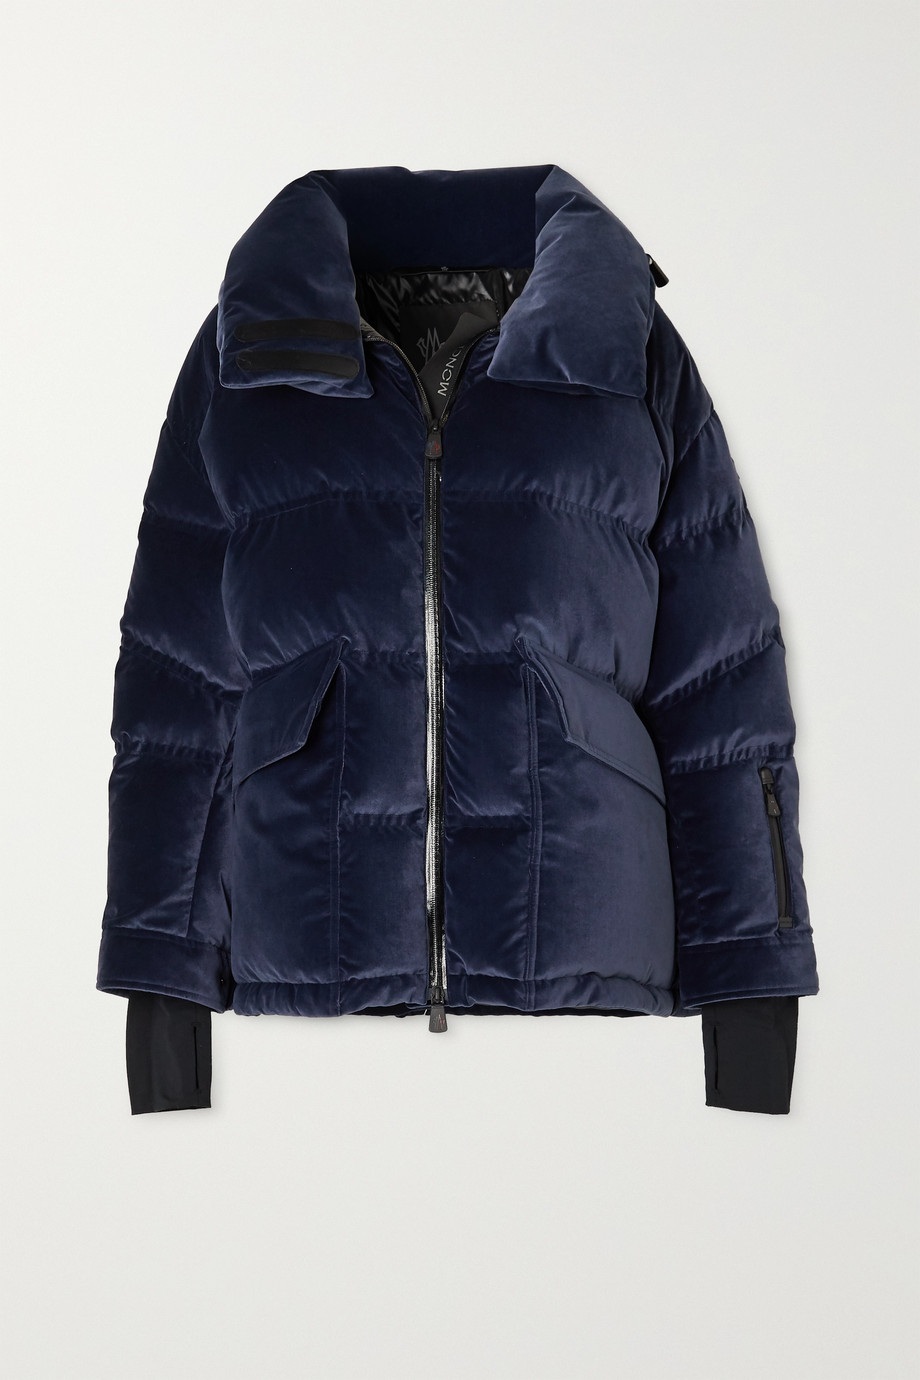 MONCLER GRENOBLE Atena hooded quilted velvet down jacket